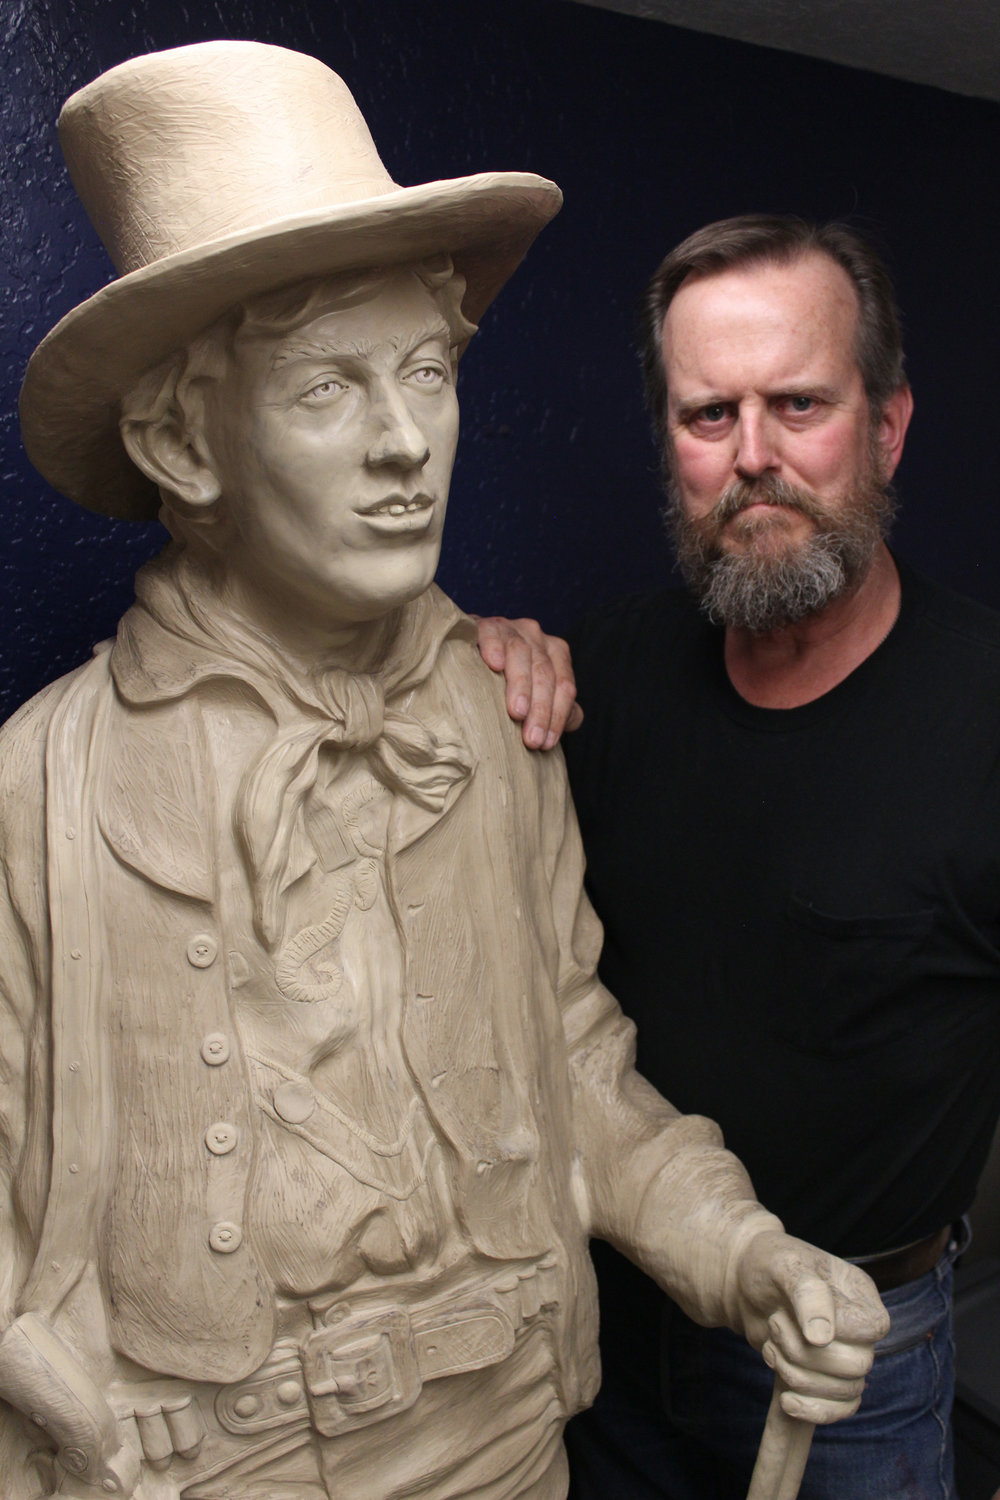 Las Cruces artist Bob Diven and his sculpture of Billy the Kid. Diven is on the right.